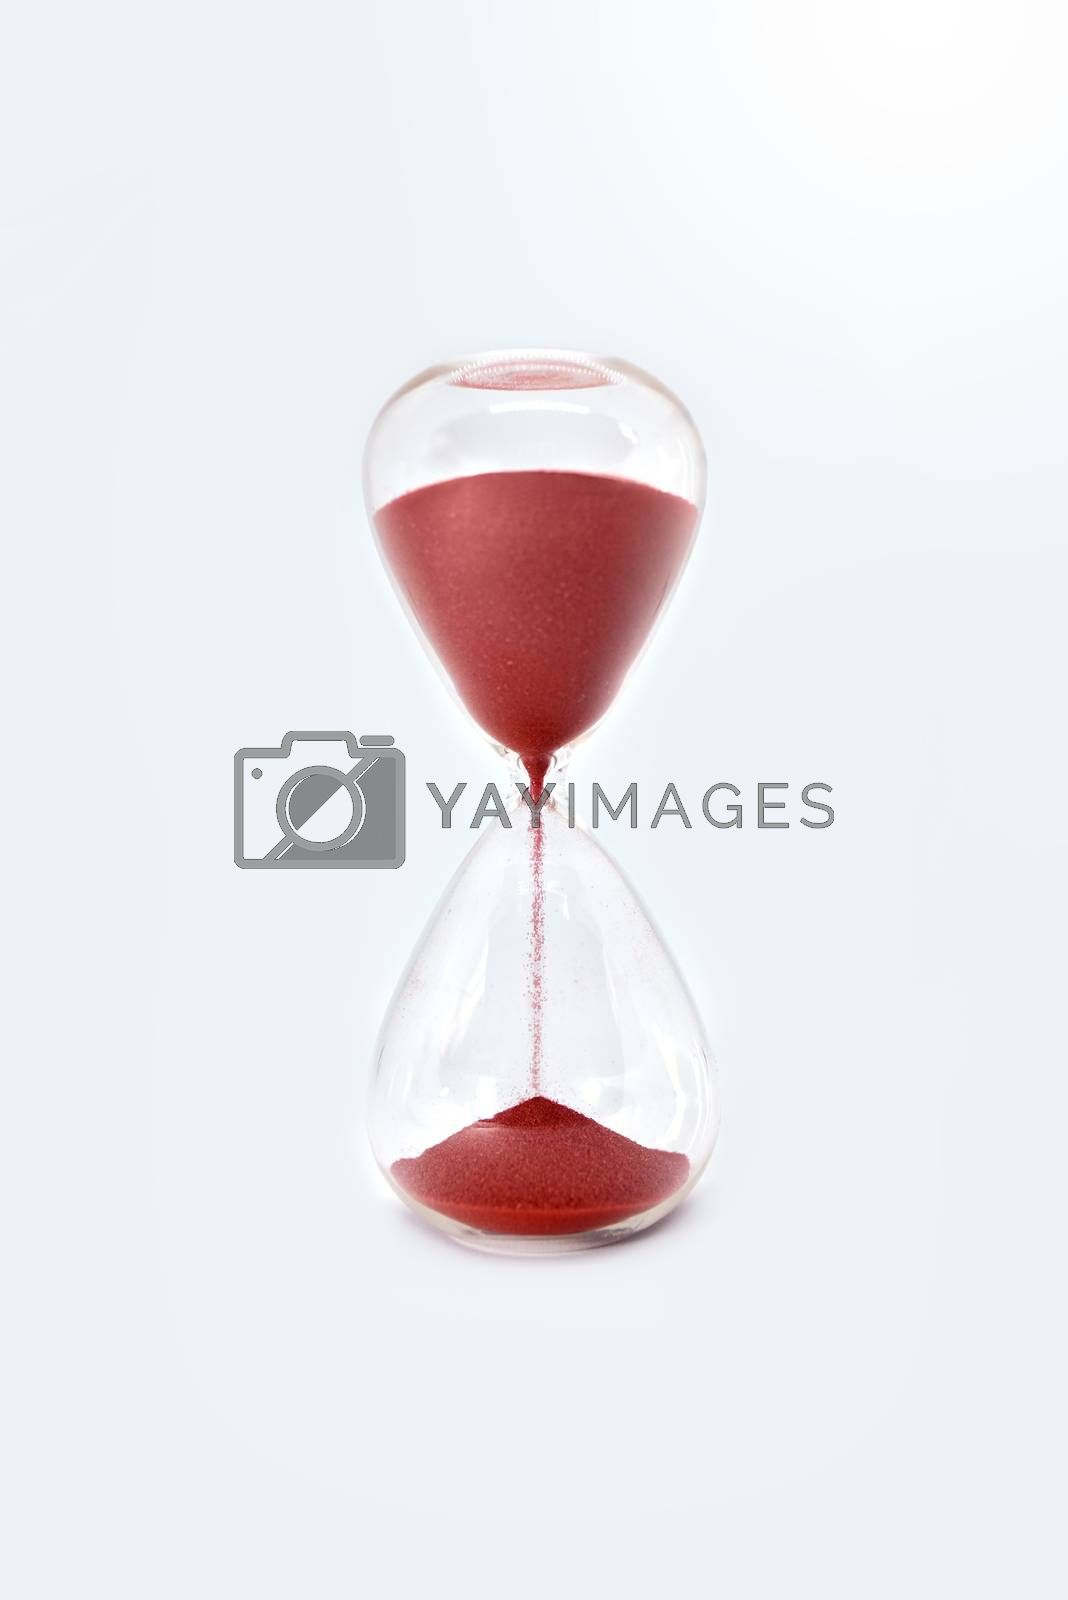 Hourglass clock isolated on white background